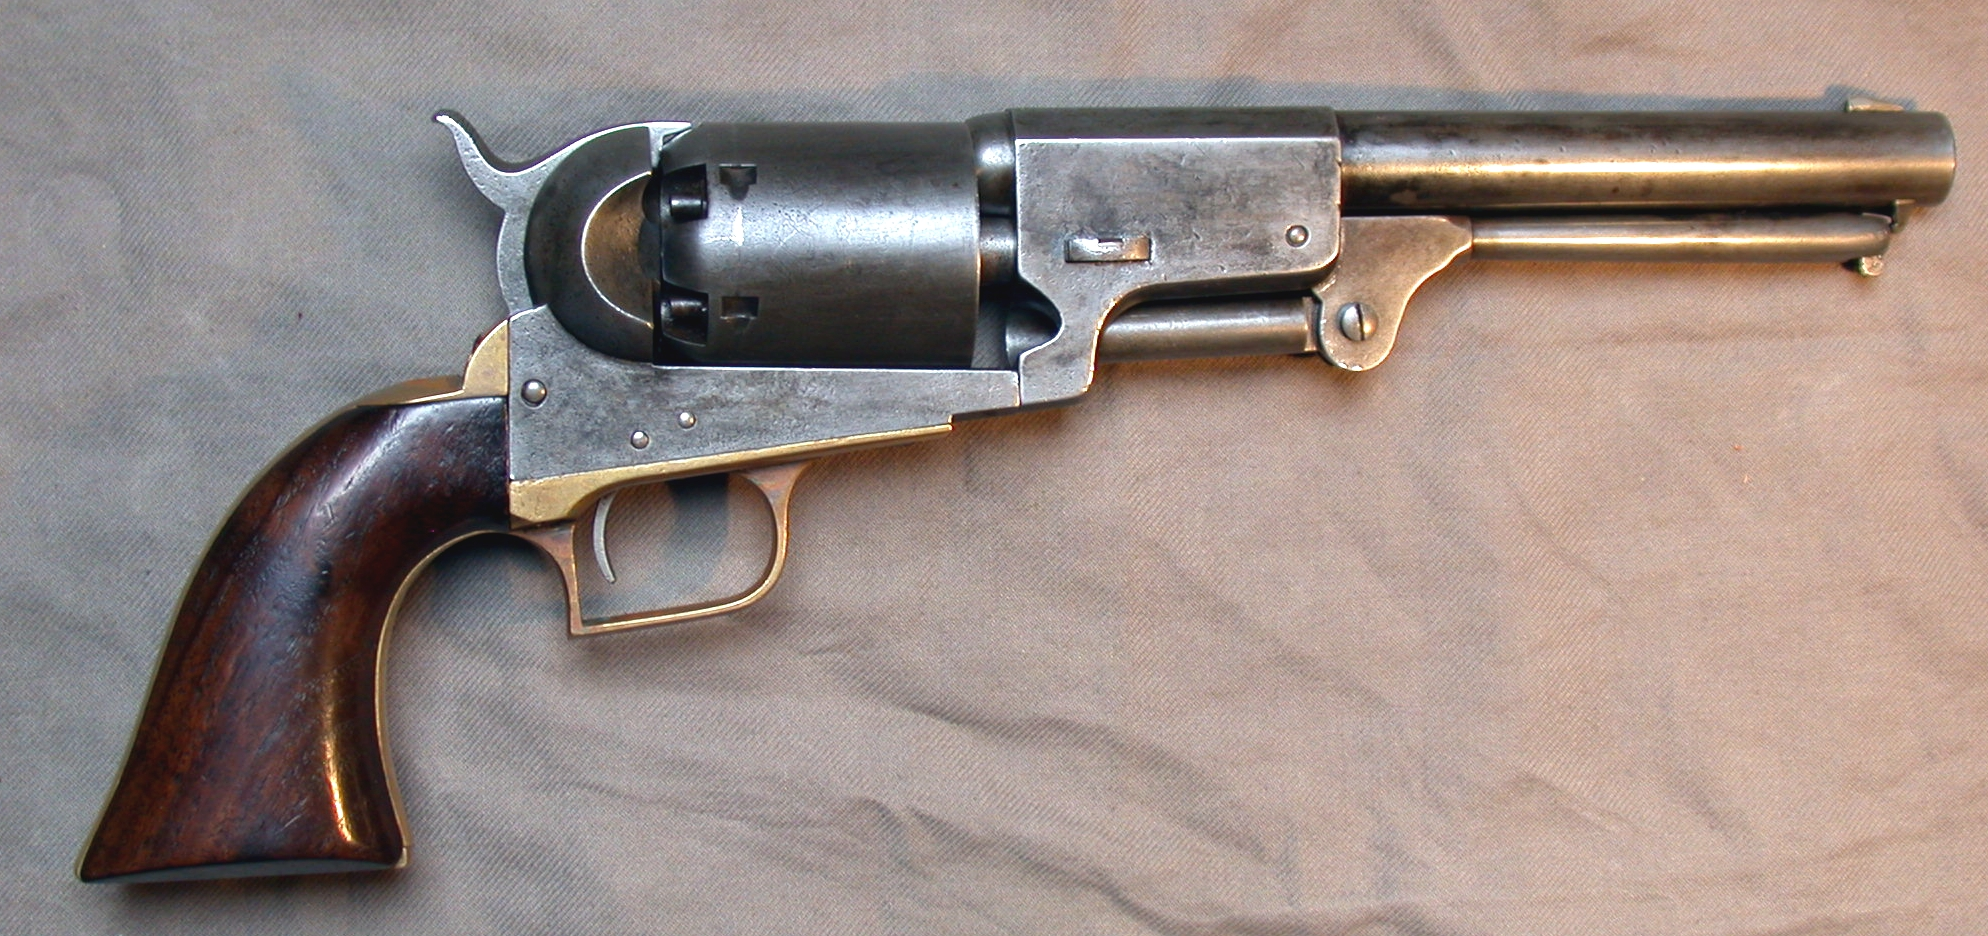 The Colt Walker revolver Photo: pinterest